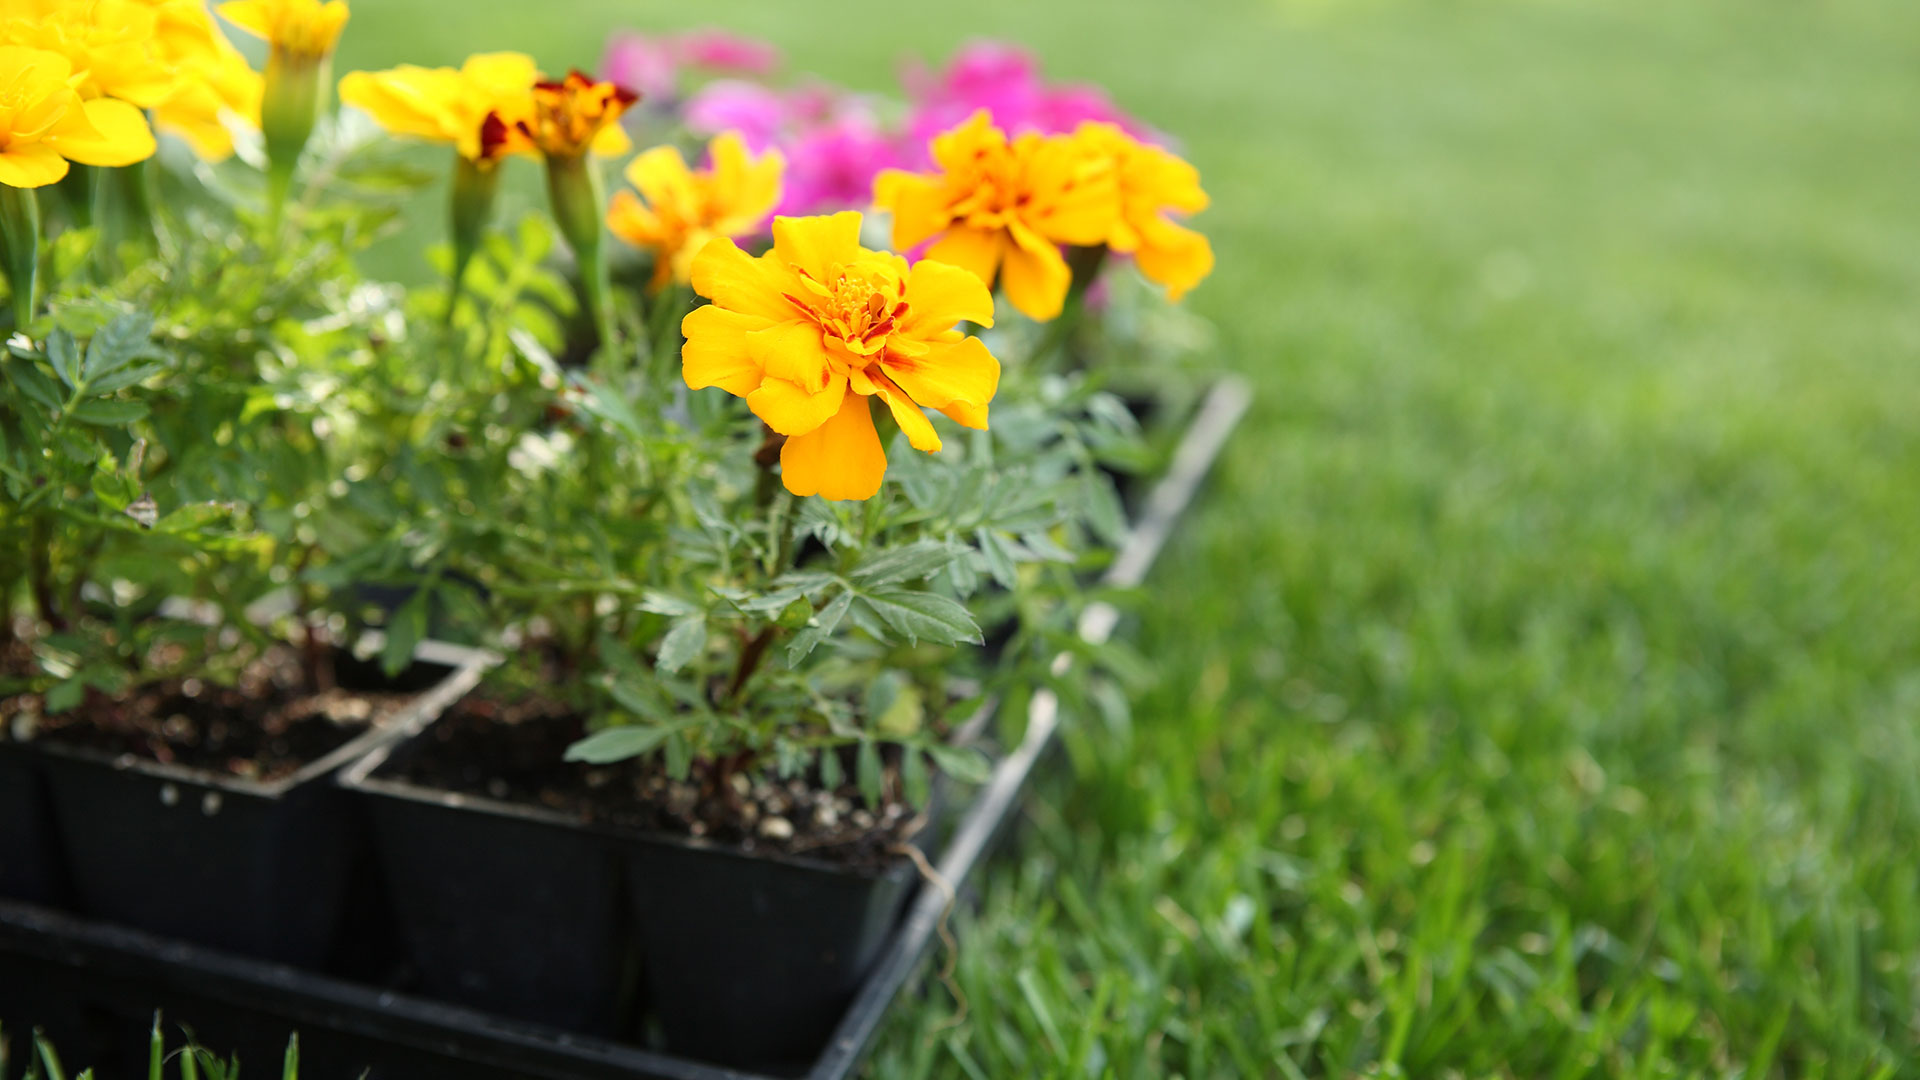 Examples of the type of flowers that Spring View Lawns plant for their annual flower planting service.